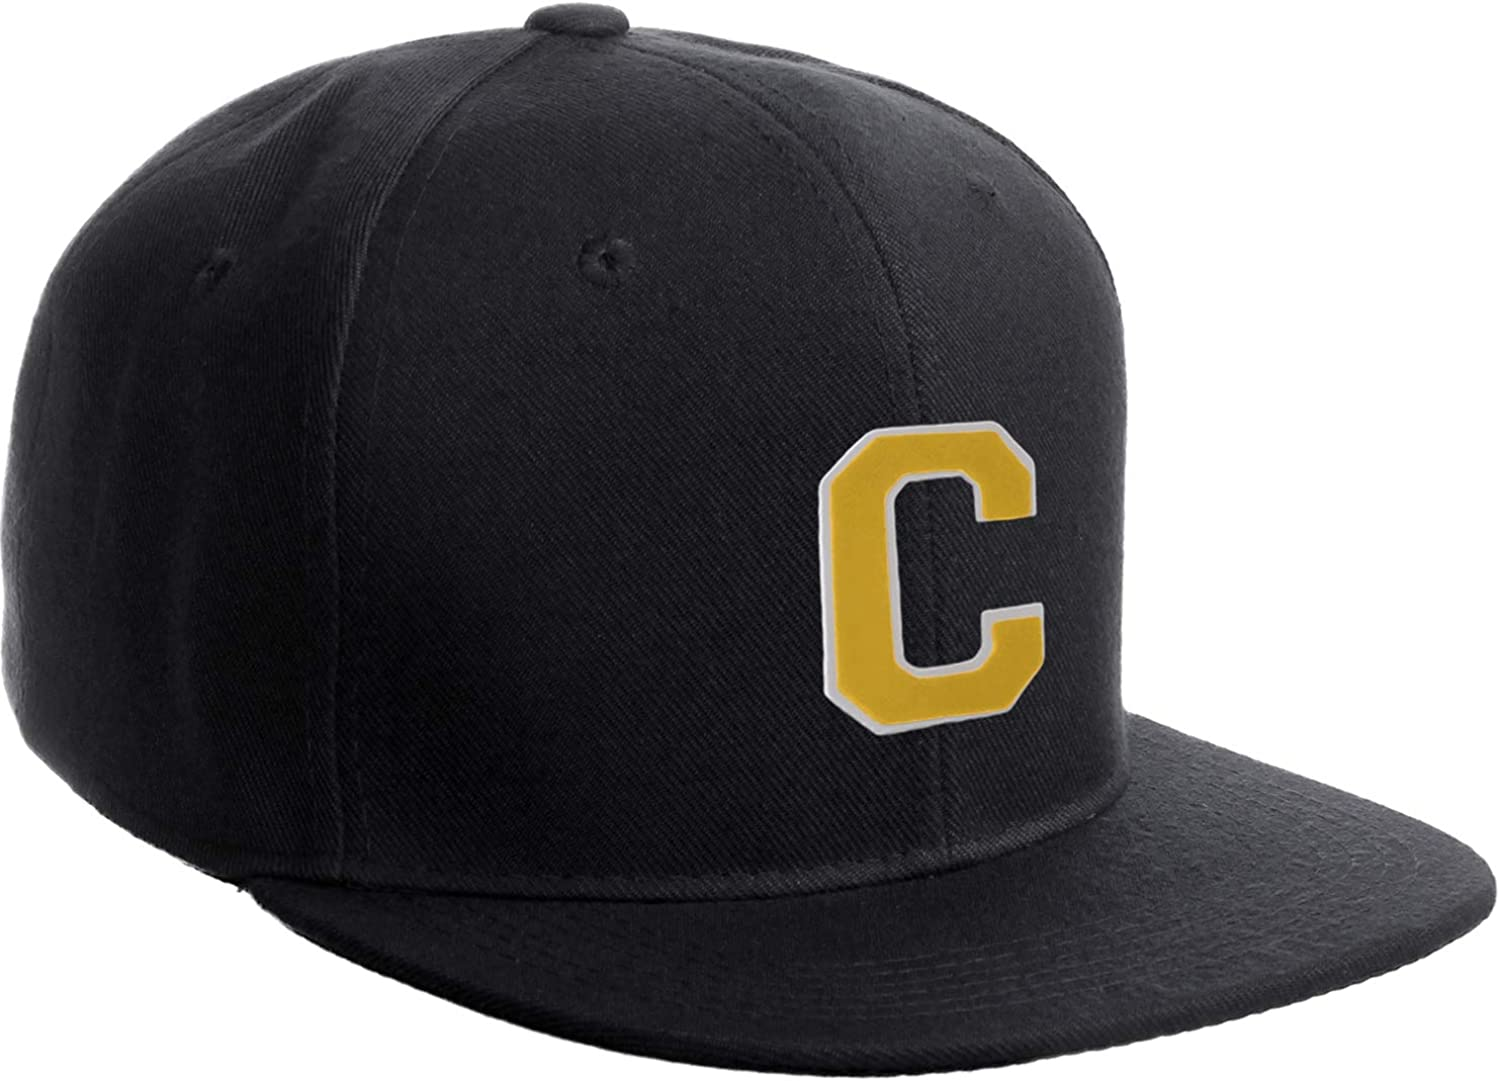 Classic Snapback Hat Custom A to Z Initial Raised Letters, Black Cap White Gold